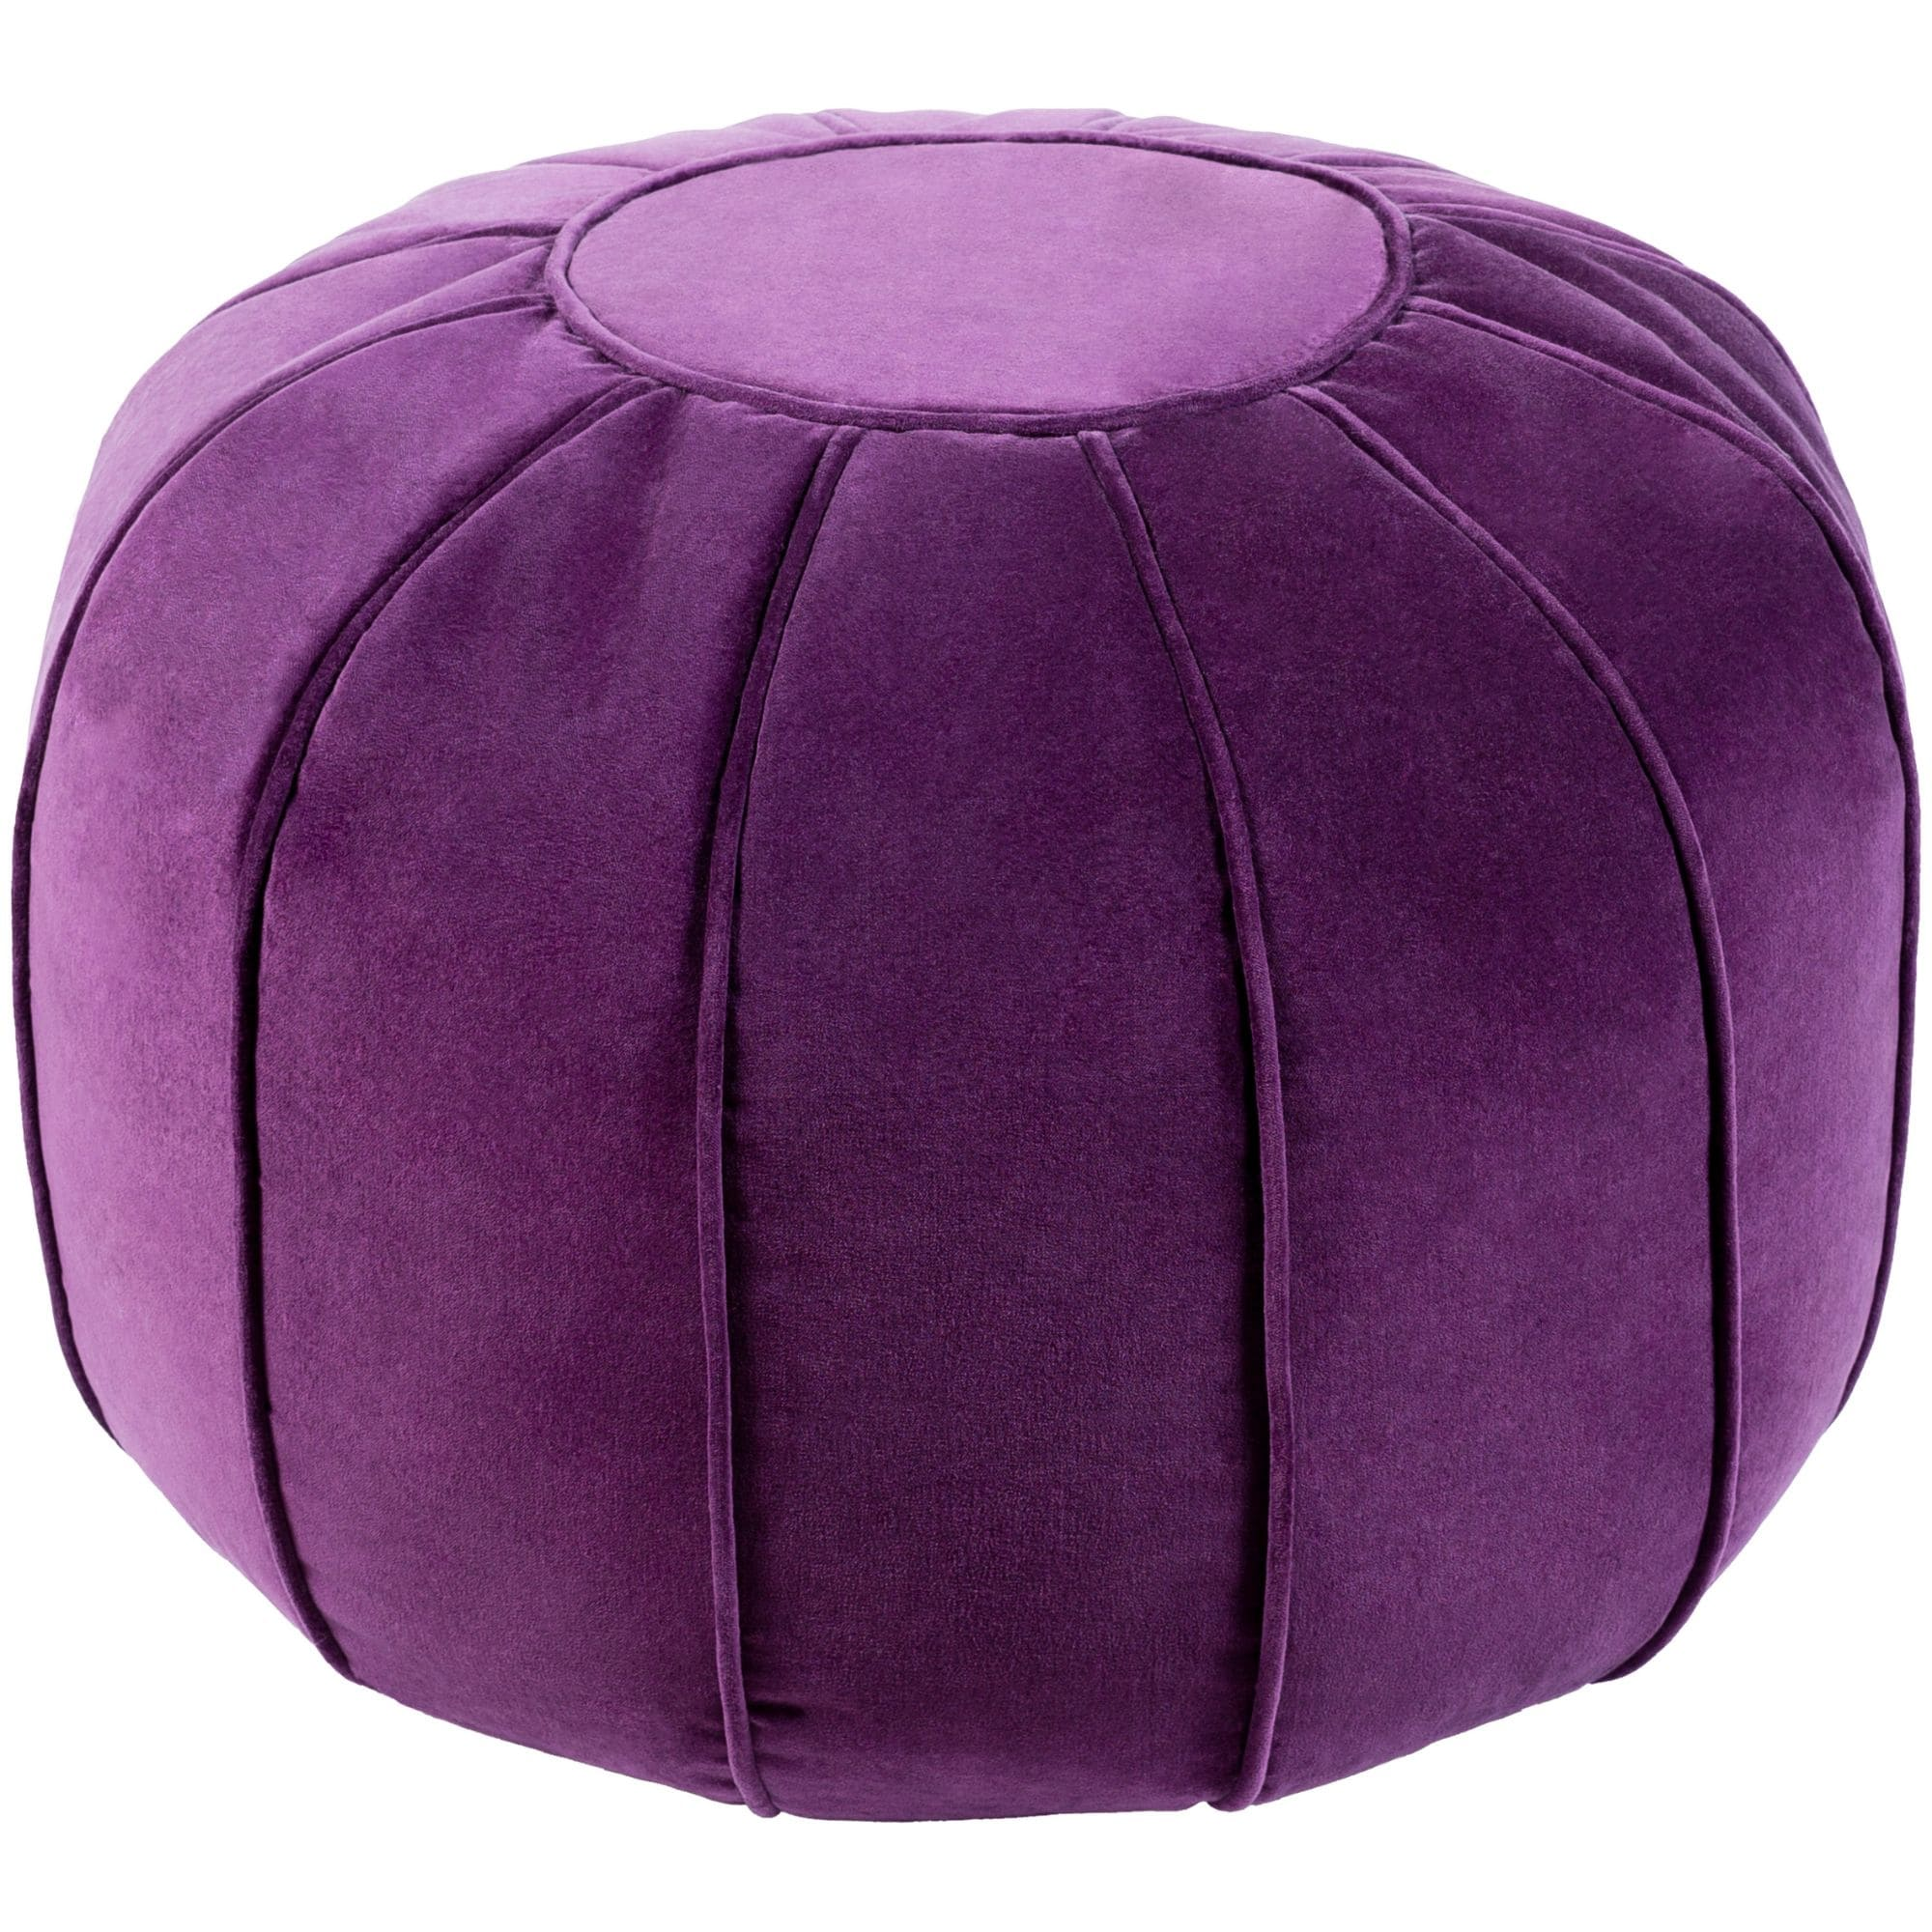 Cool 20 Purple Spherical Shaped Flange Pouf Ottoman N A Uwap Interior Chair Design Uwaporg